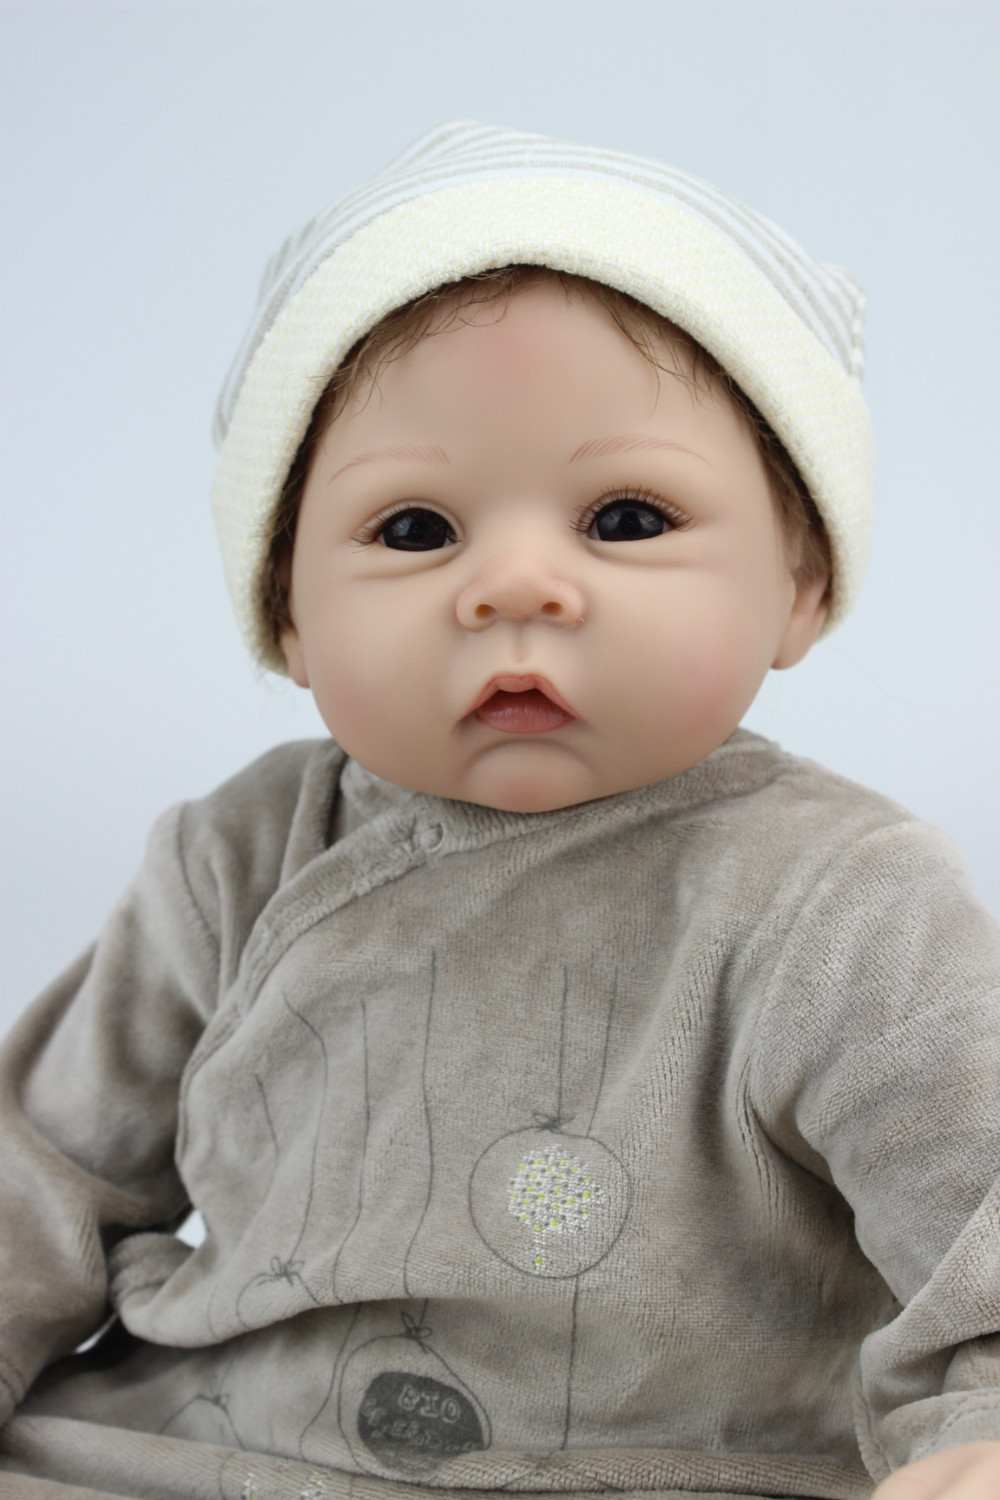 2014 NEW hot sale lifelike reborn baby doll wholesale baby dolls fashion doll Christmas gift one yaer old gift цена